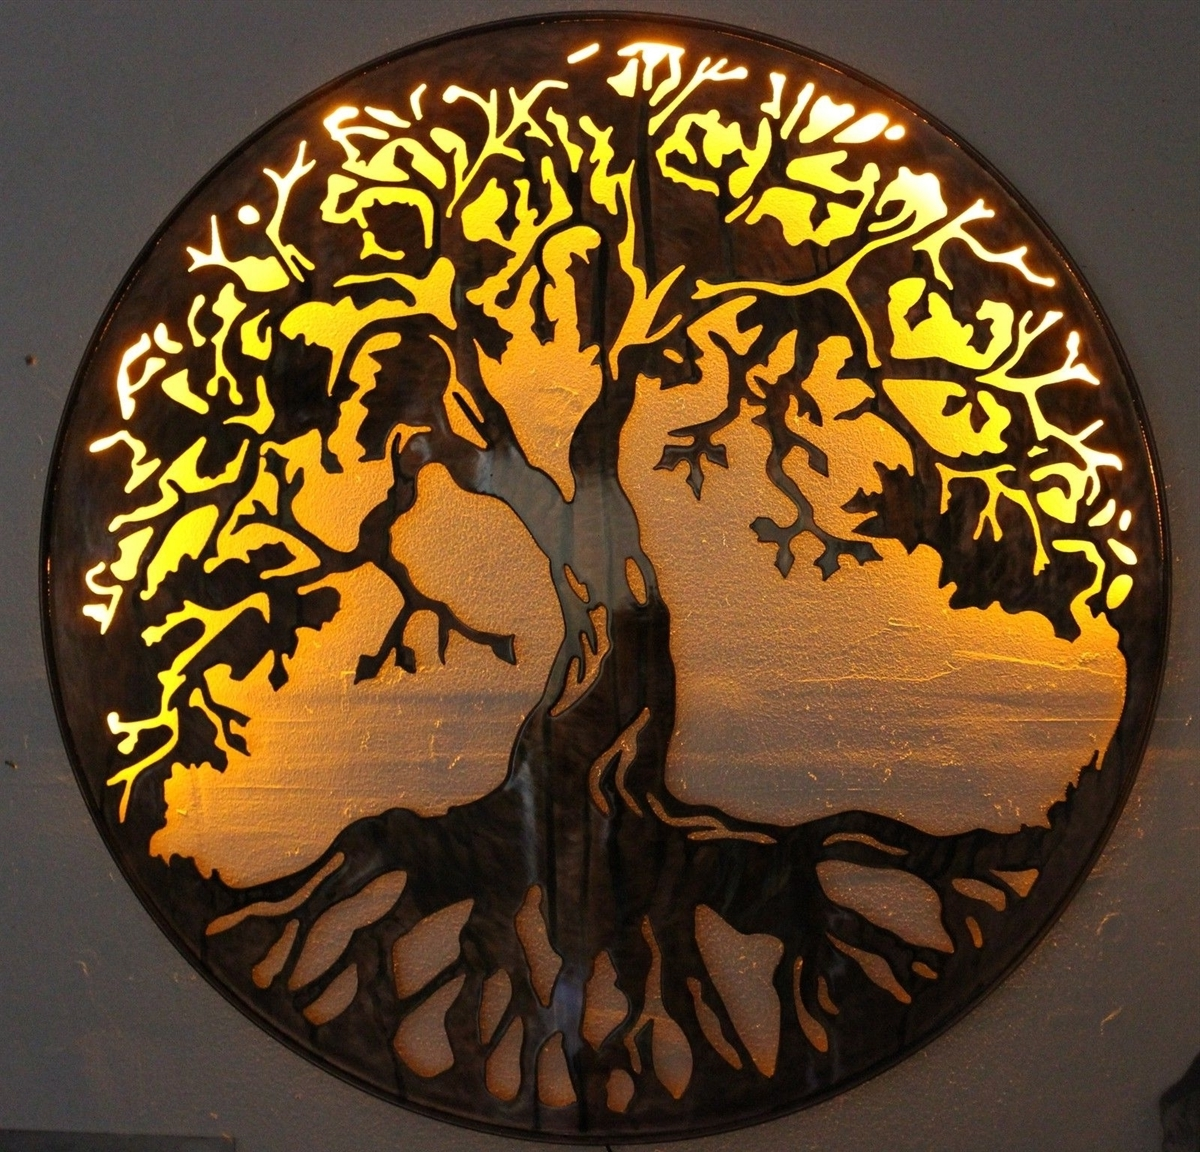 "Of Life Metal Wall Art 24"" With Led Lightshgmw In Well Known Copper Oak Tree Wall Art (Gallery 2 of 15)"